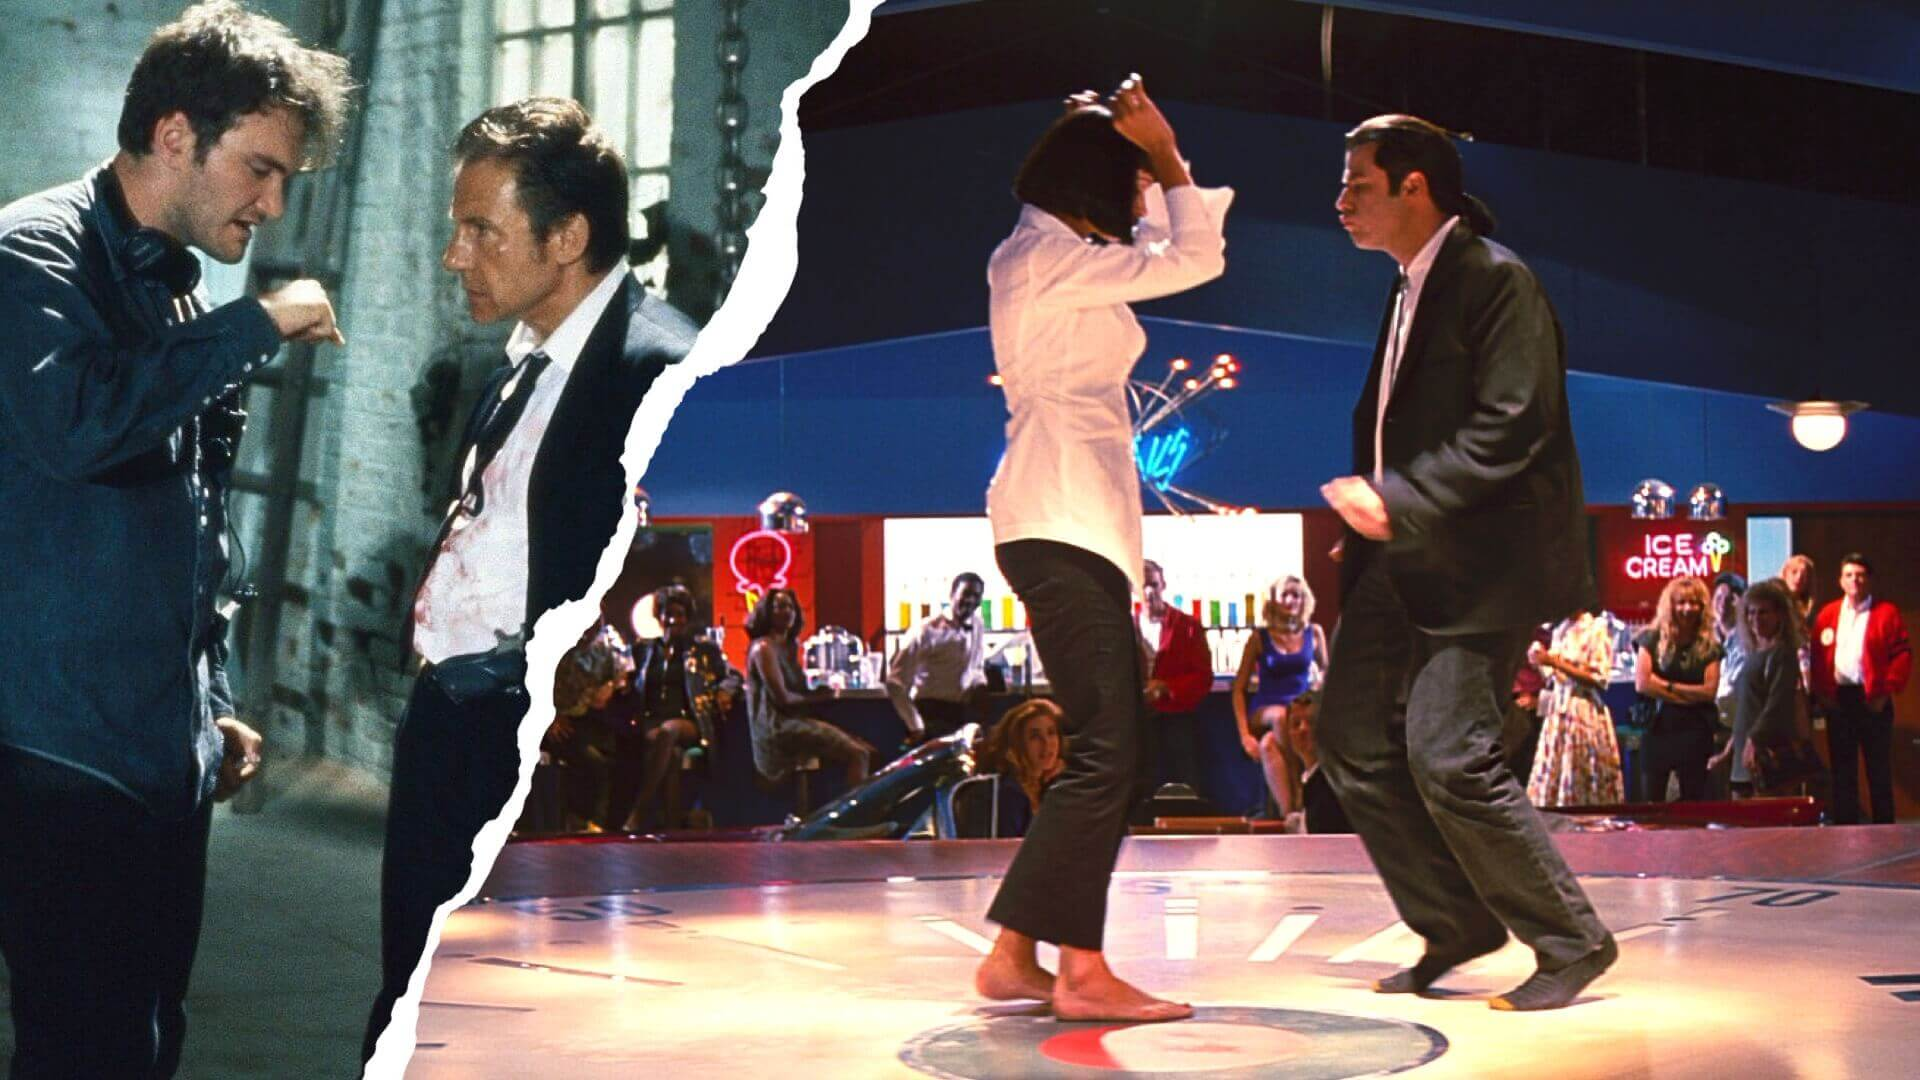 Best Quentin Tarantino Songs Used in His Movies - Quentin Tarantino Video Essay